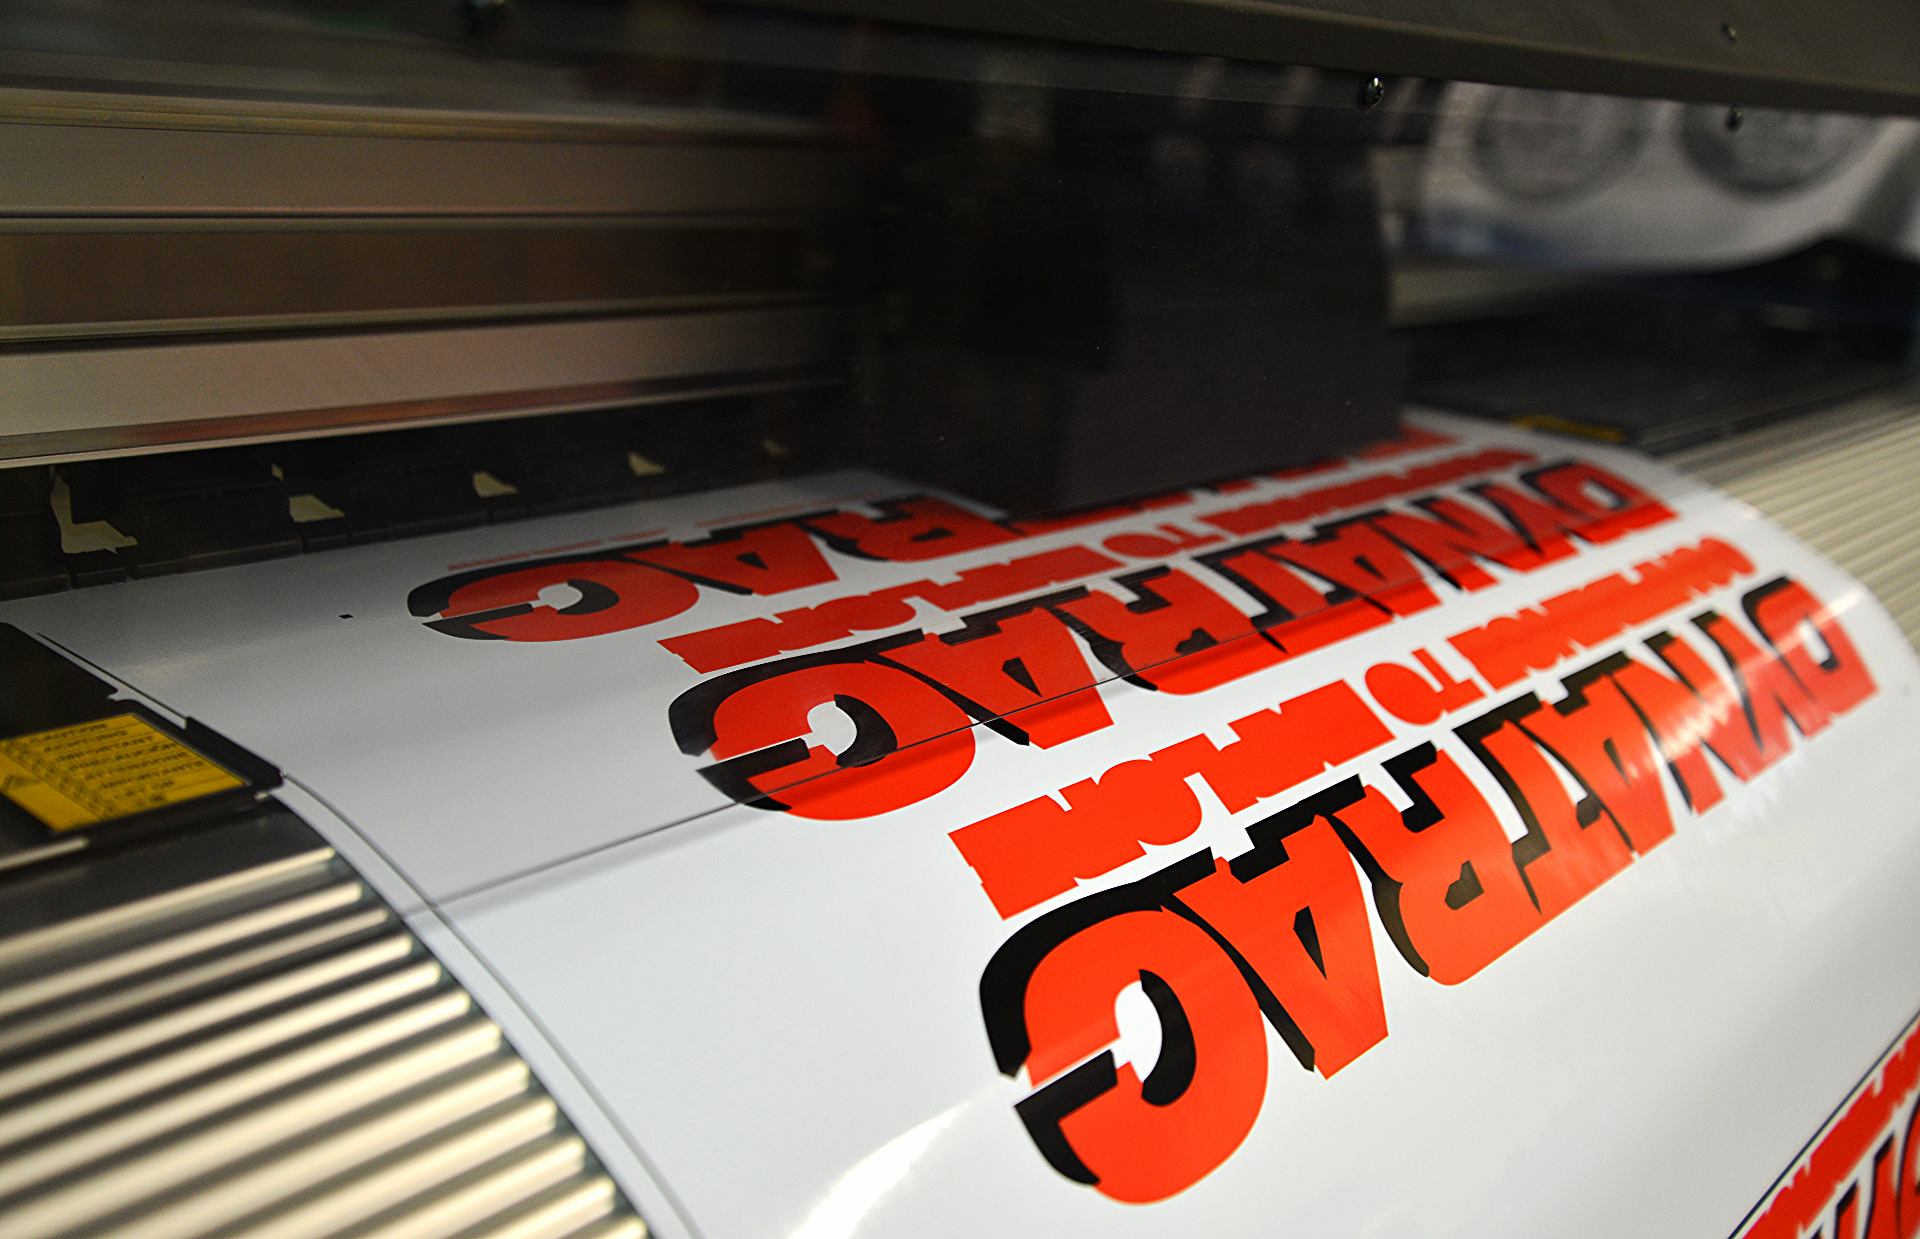 Digital Printing Head In Action